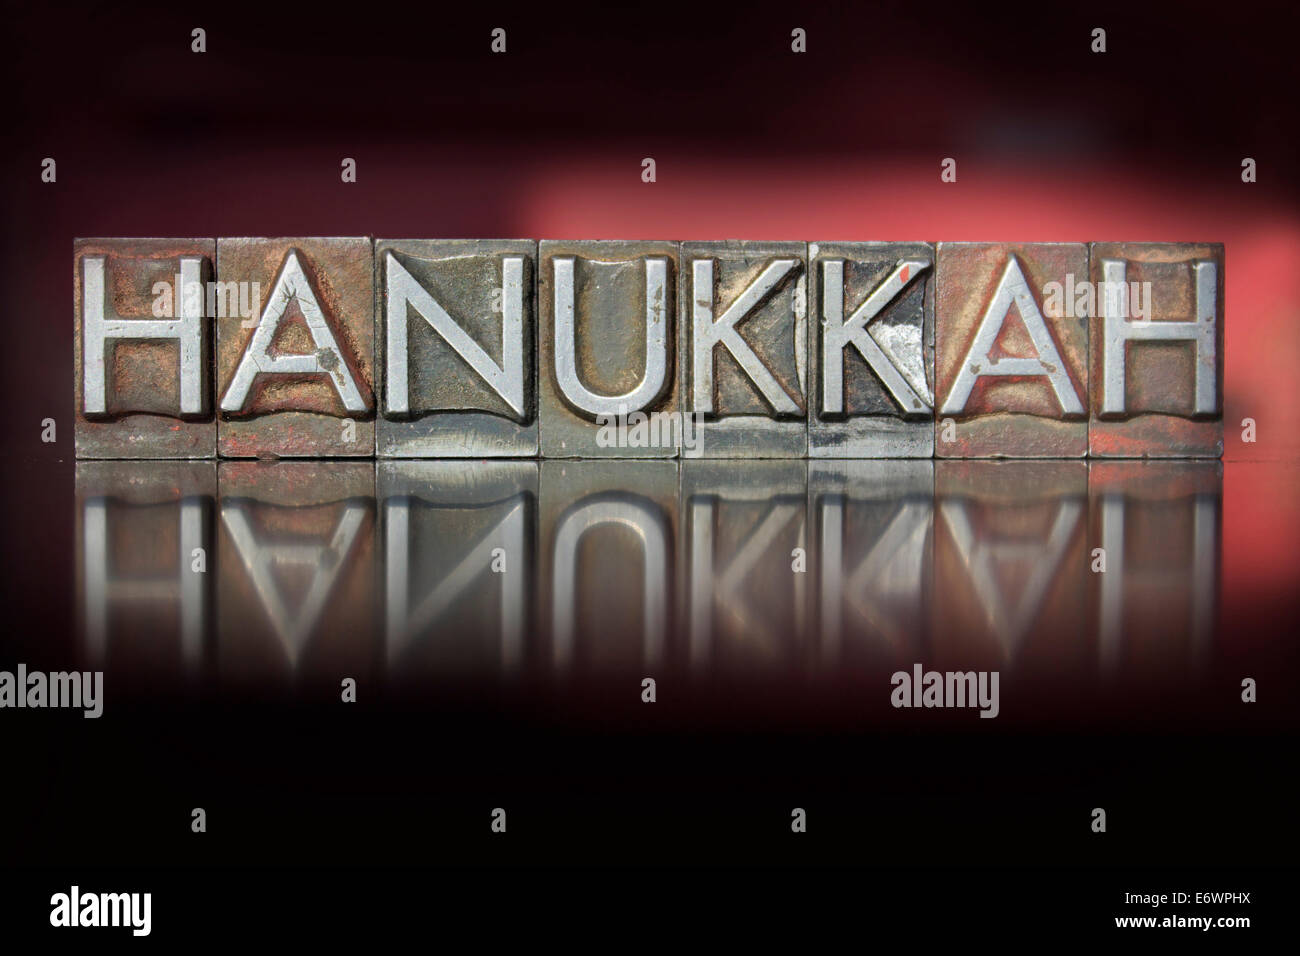 The word Hanukkah written in vintage letterpress type - Stock Image